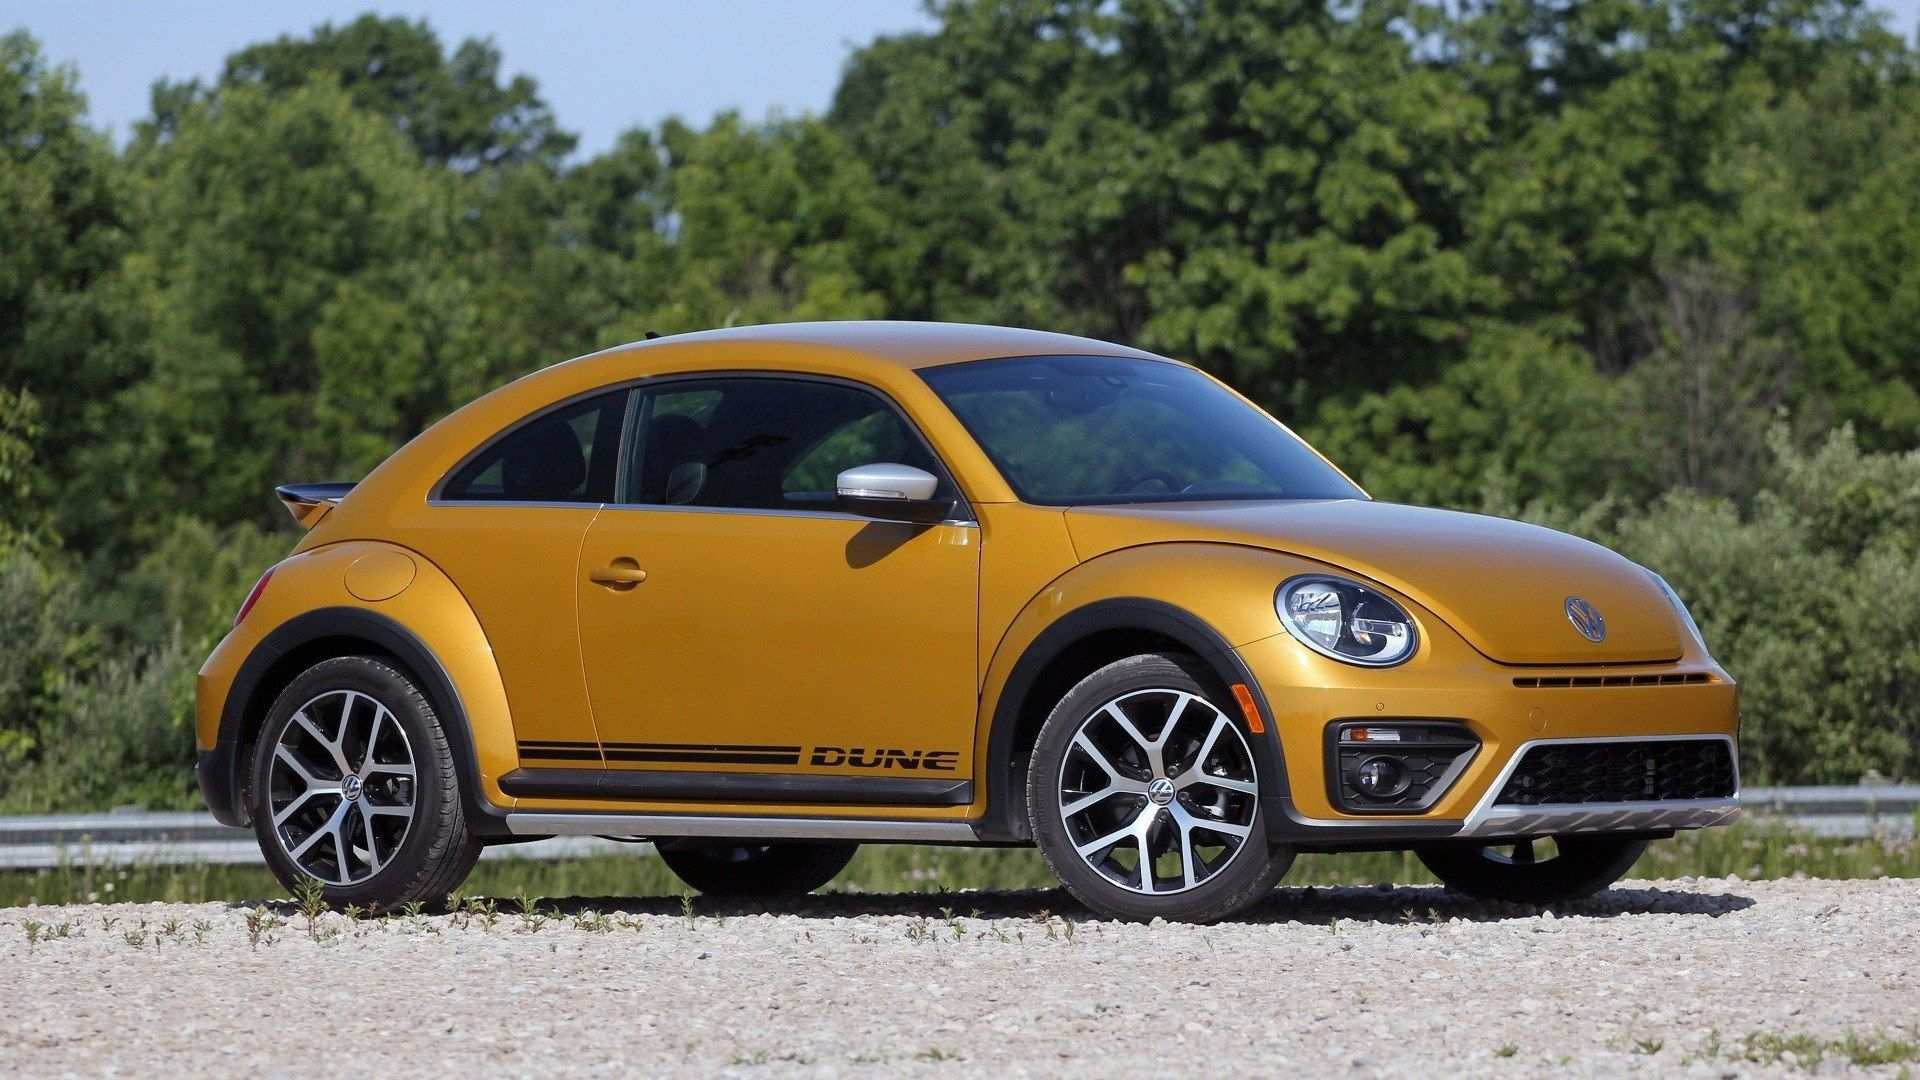 44 A 2020 Volkswagen Beetle Dune Redesign And Concept